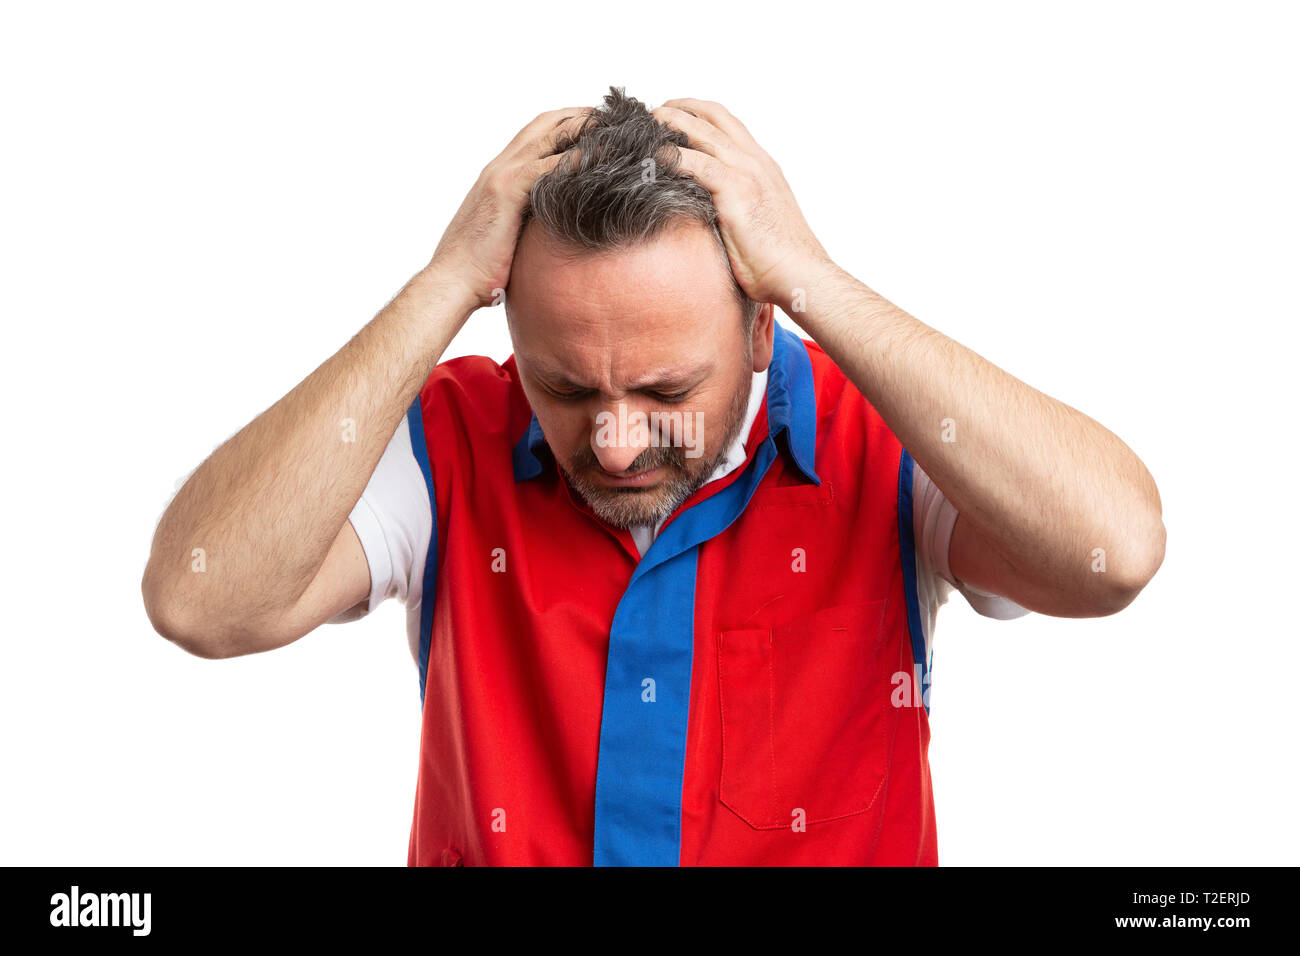 Hypermarket or supermarket male employee touching head with headache as stressed concept isolated on white studio background - Stock Image